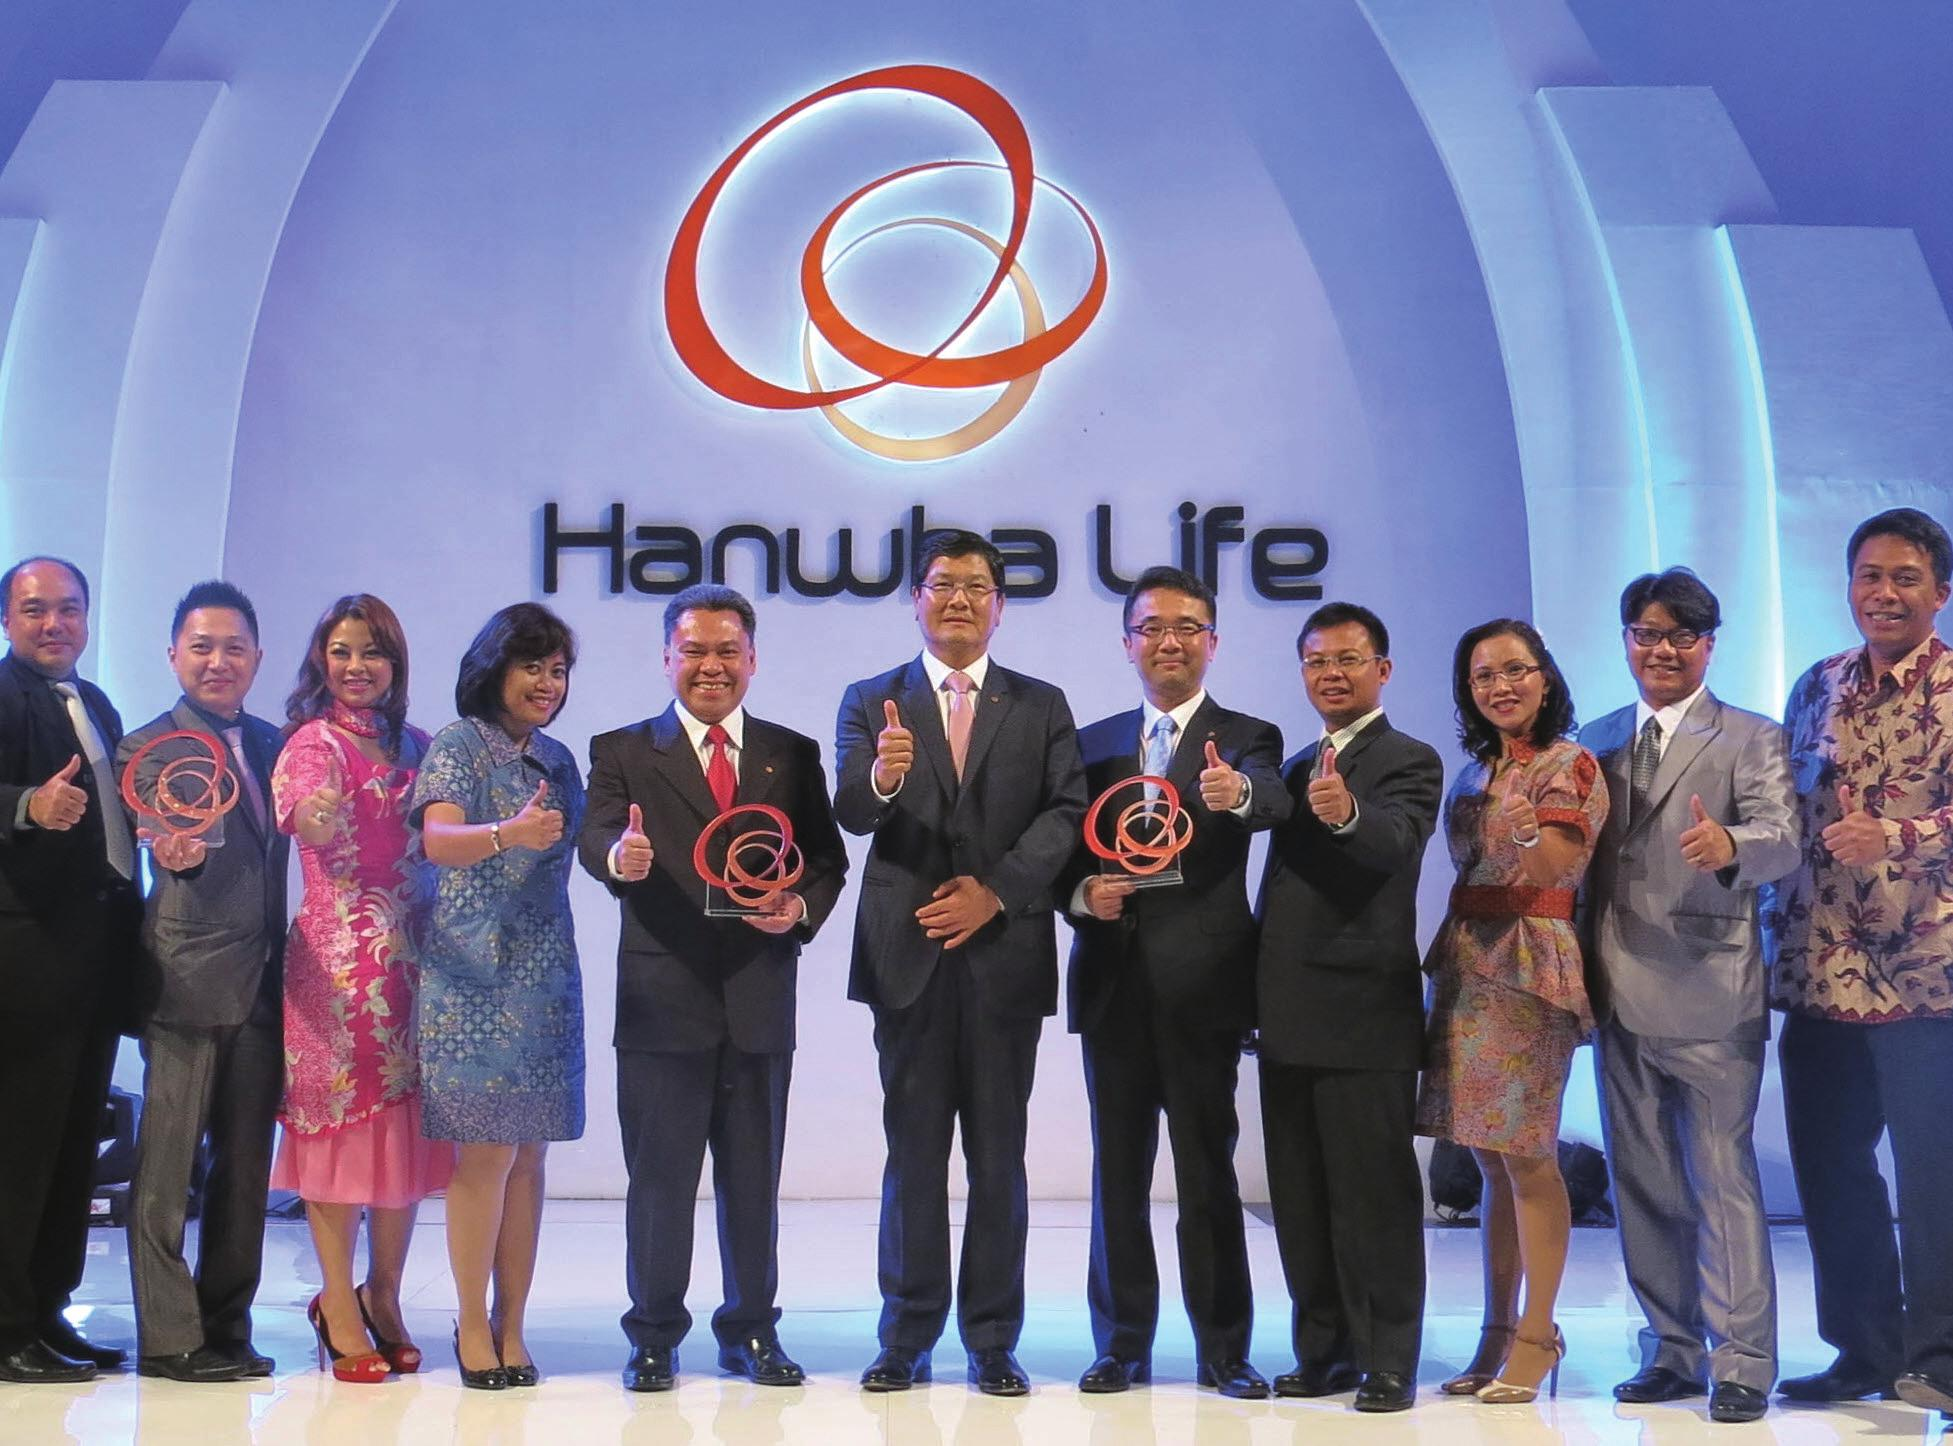 The opening ceremony for PT. Hanwha Life Insurance Indonesia at the Kempinski Hotel Jakarta on October 24. CEO Chan Nam-kyu (middle) and head of the local corporation Hyeon Jeong-seop (fifth from the right) give a thumbs-up with the local employees.